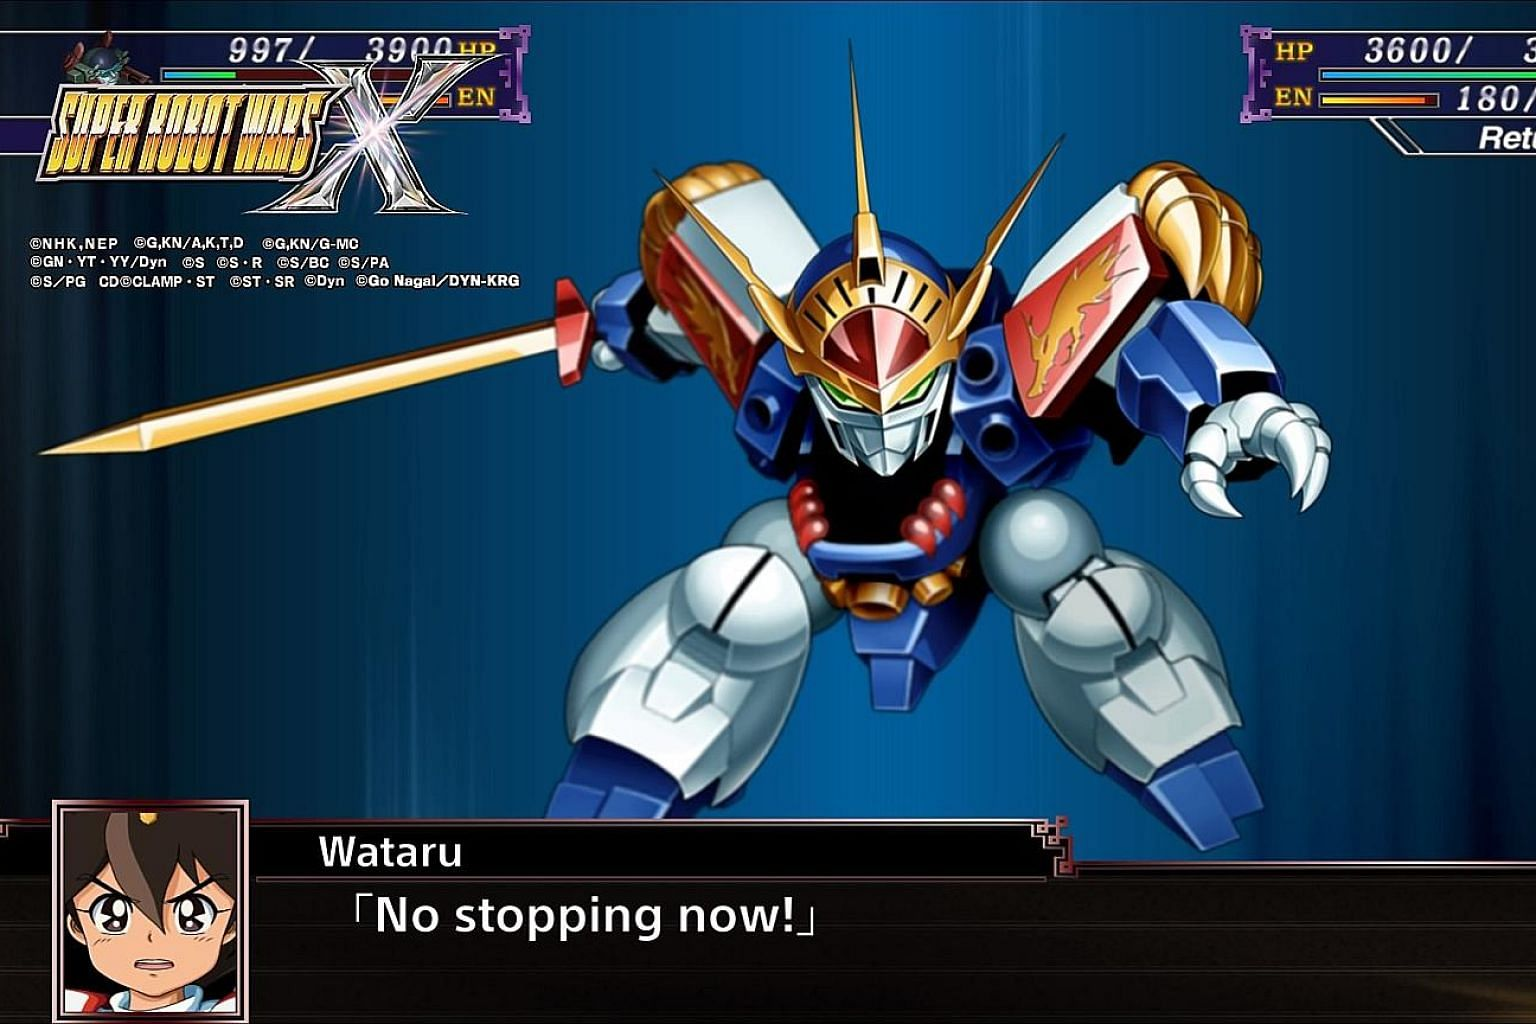 Players feel like they are in an interactive manga in Super Robot Wars X.